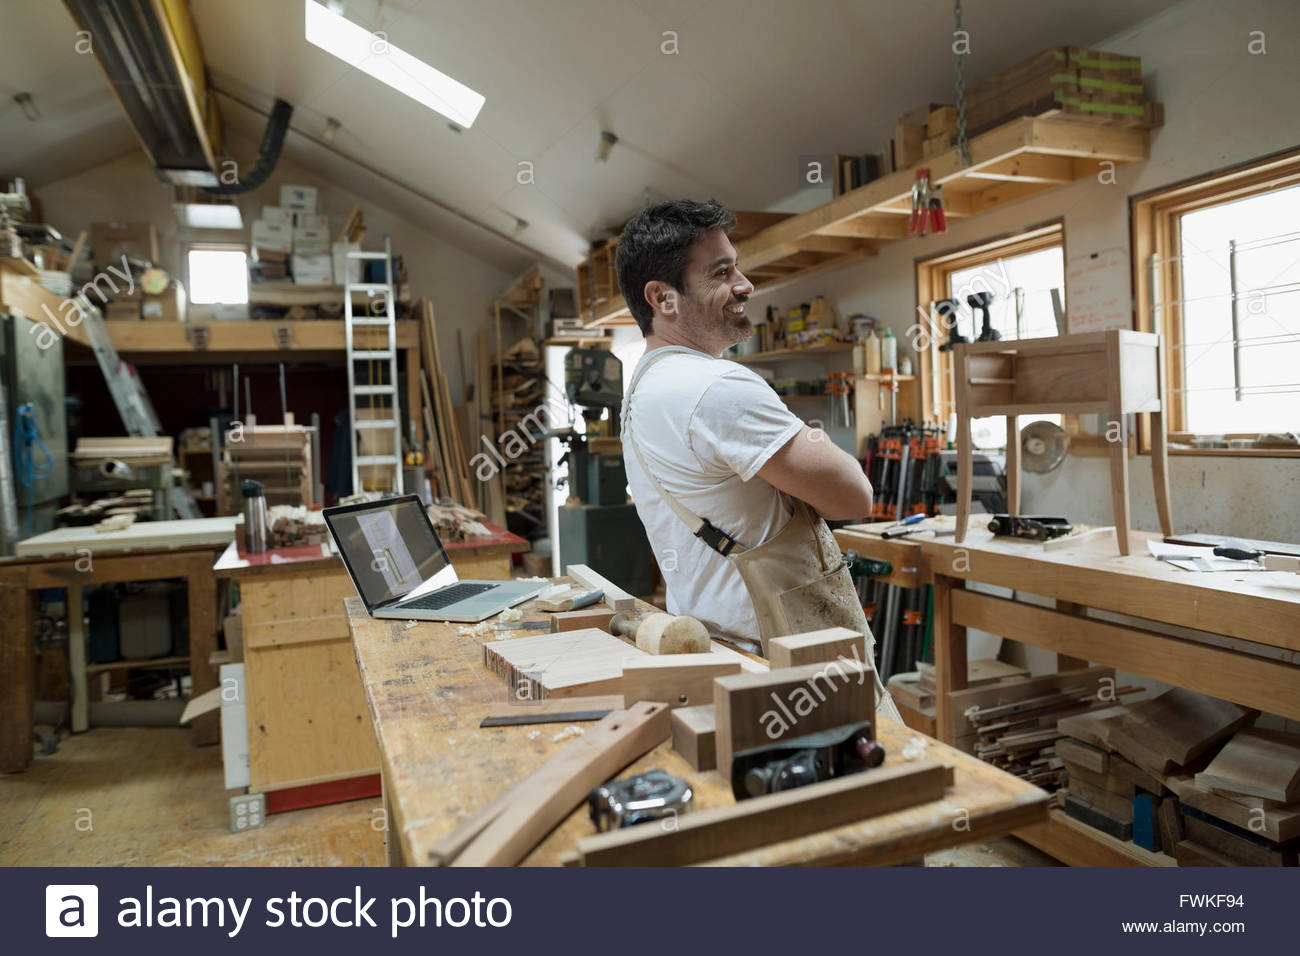 Confident carpenter with arms crossed in workshop - Stock Image